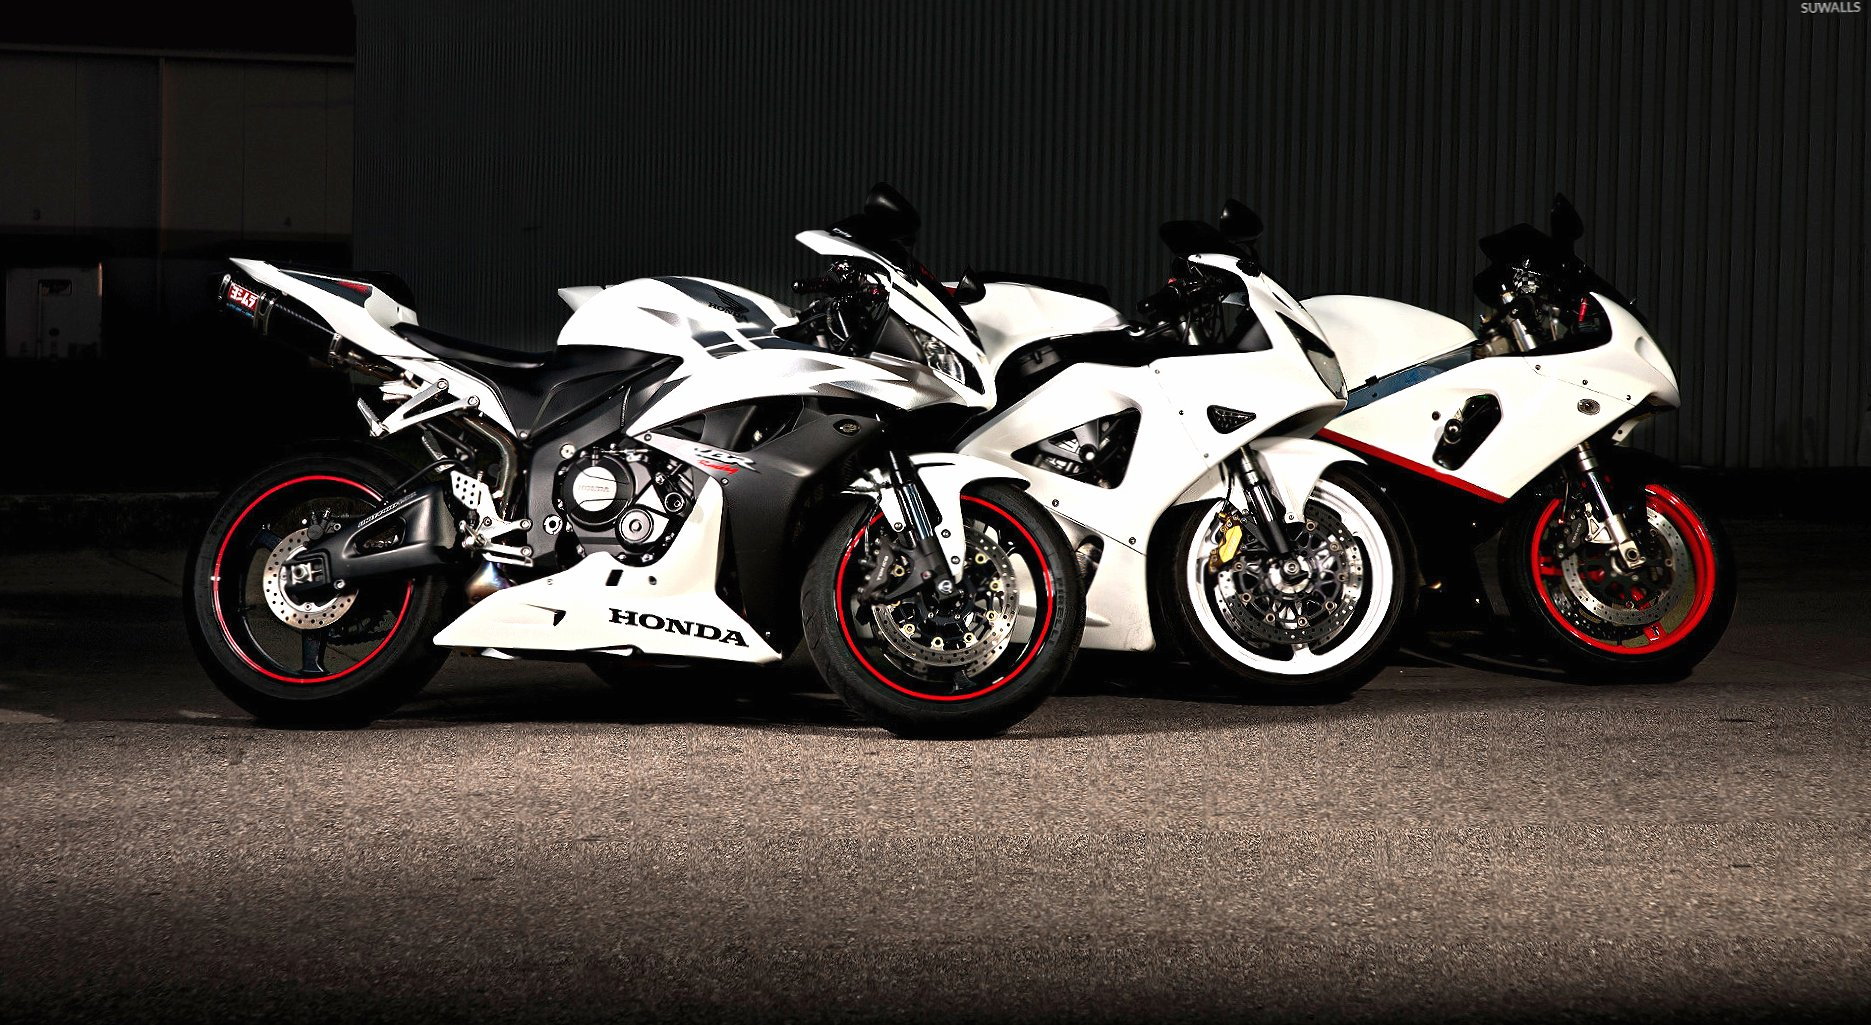 White Honda CBR series motorcycles wallpapers HD quality